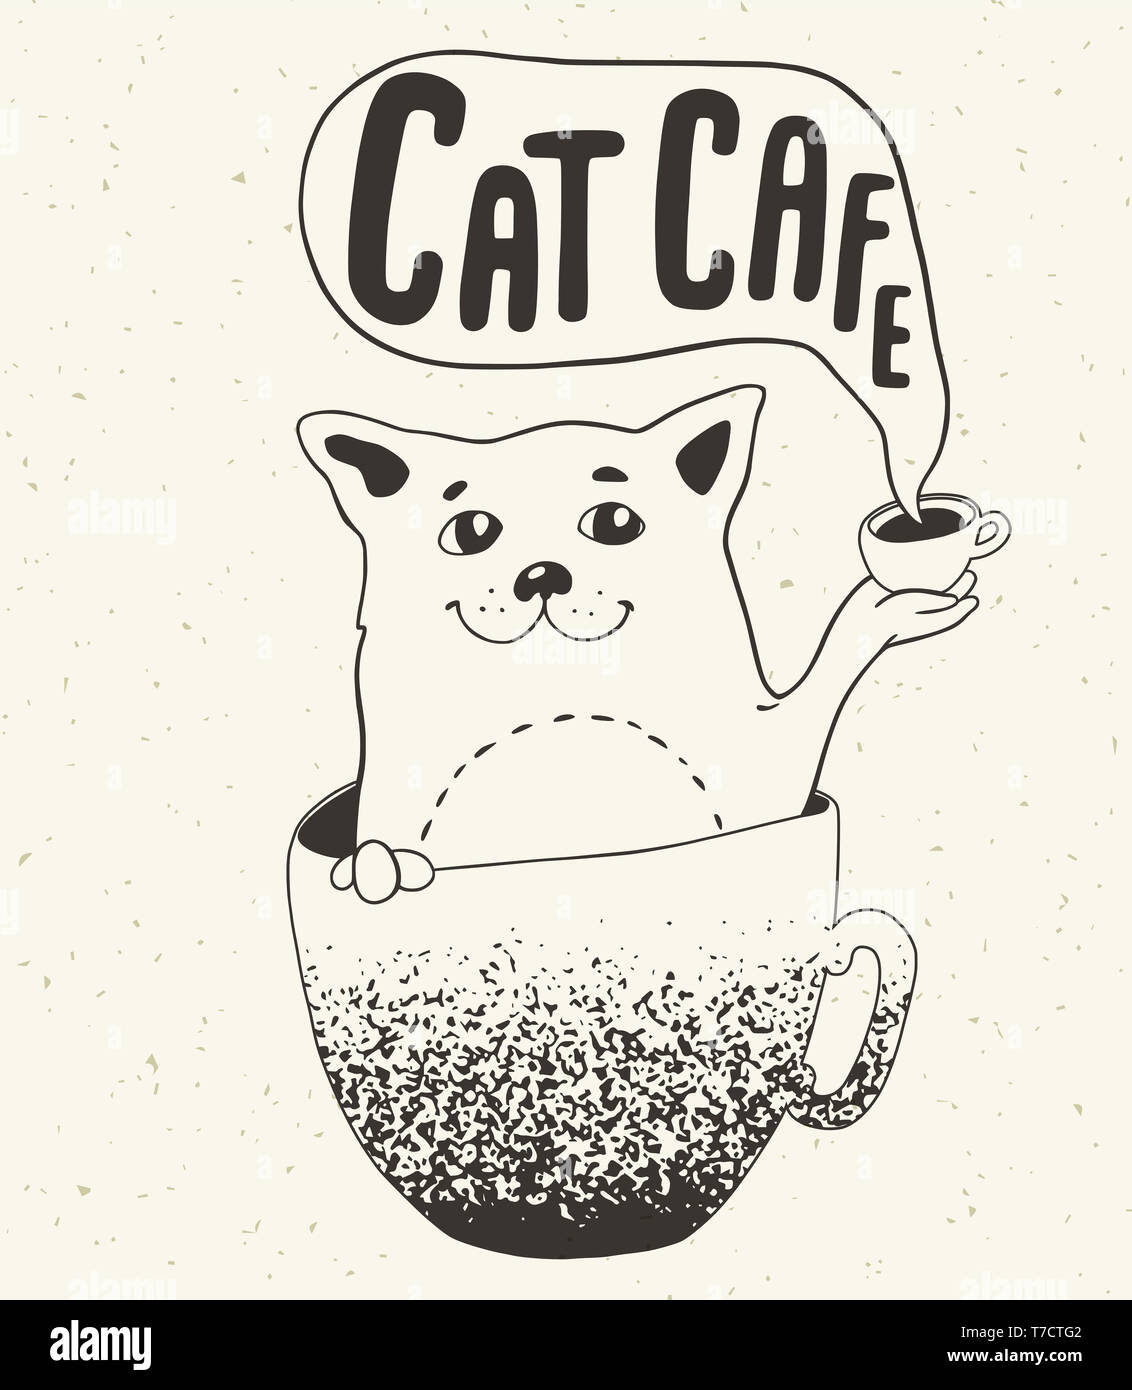 Cat In The Coffee Cup And Lettering Poster For Cat Cafe Hand Drawn Illustration Coffee House Concept Stock Photo Alamy